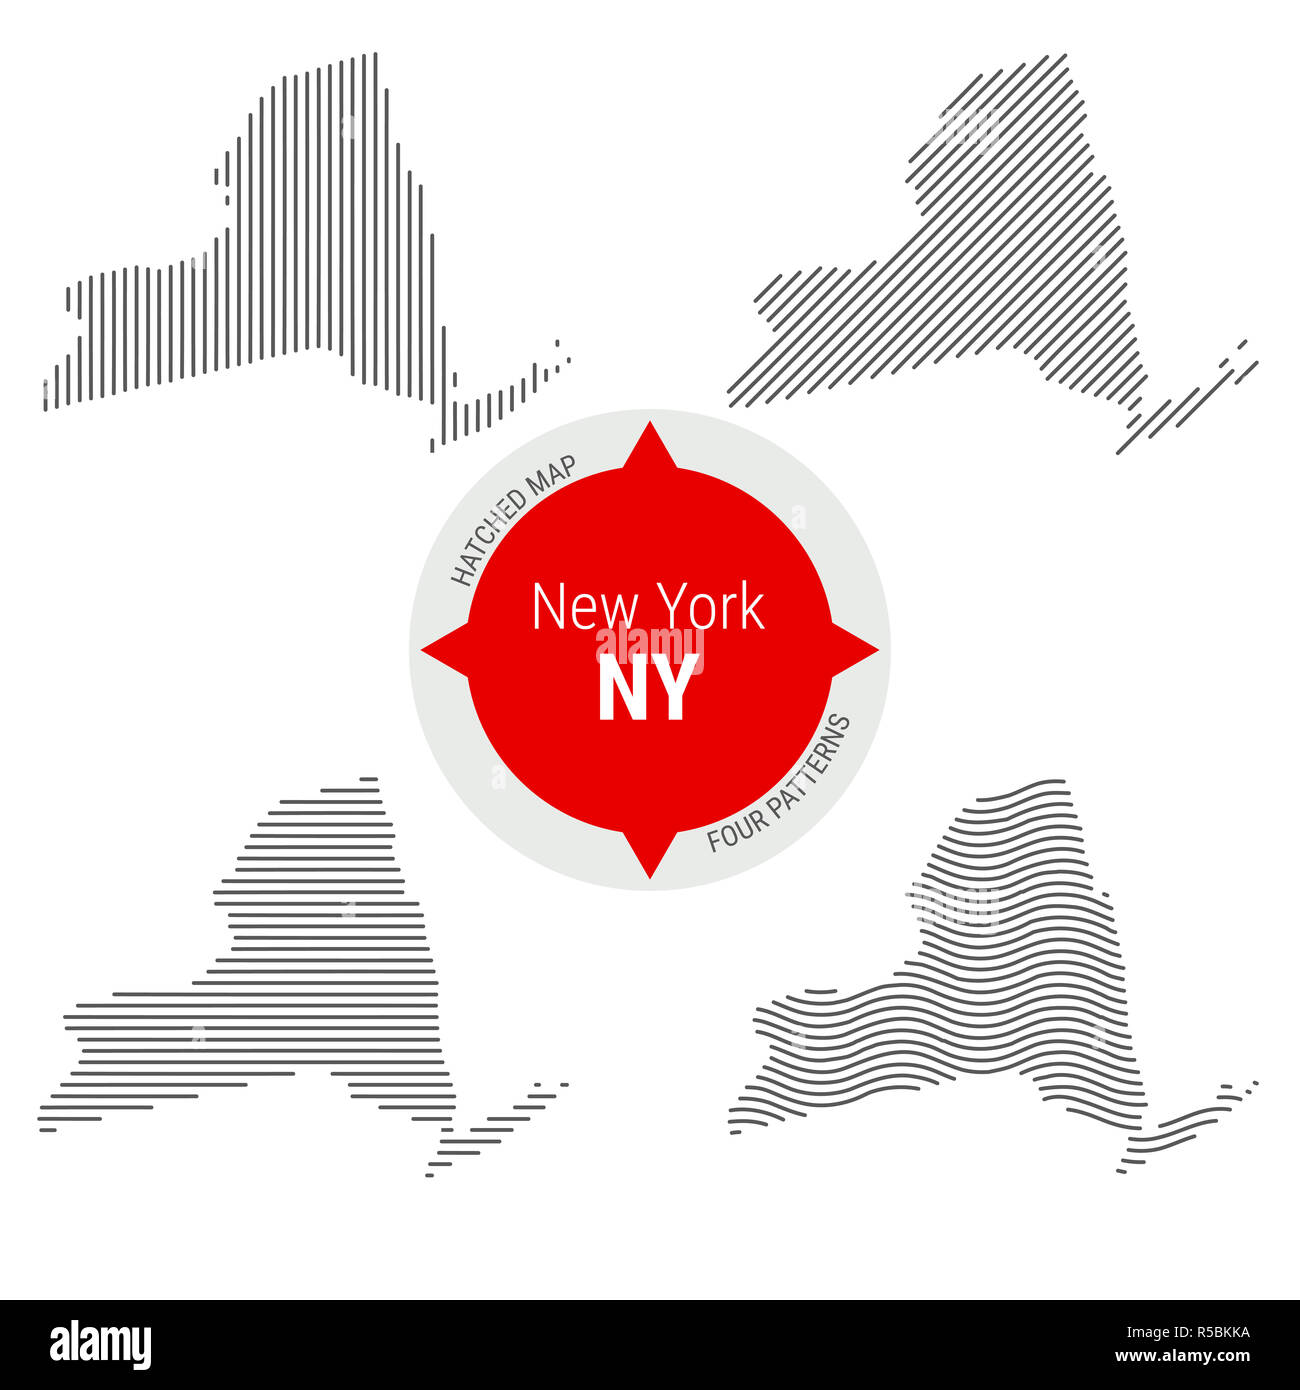 Hatched Pattern Map of New York. Stylized Simple Silhouette of New ...